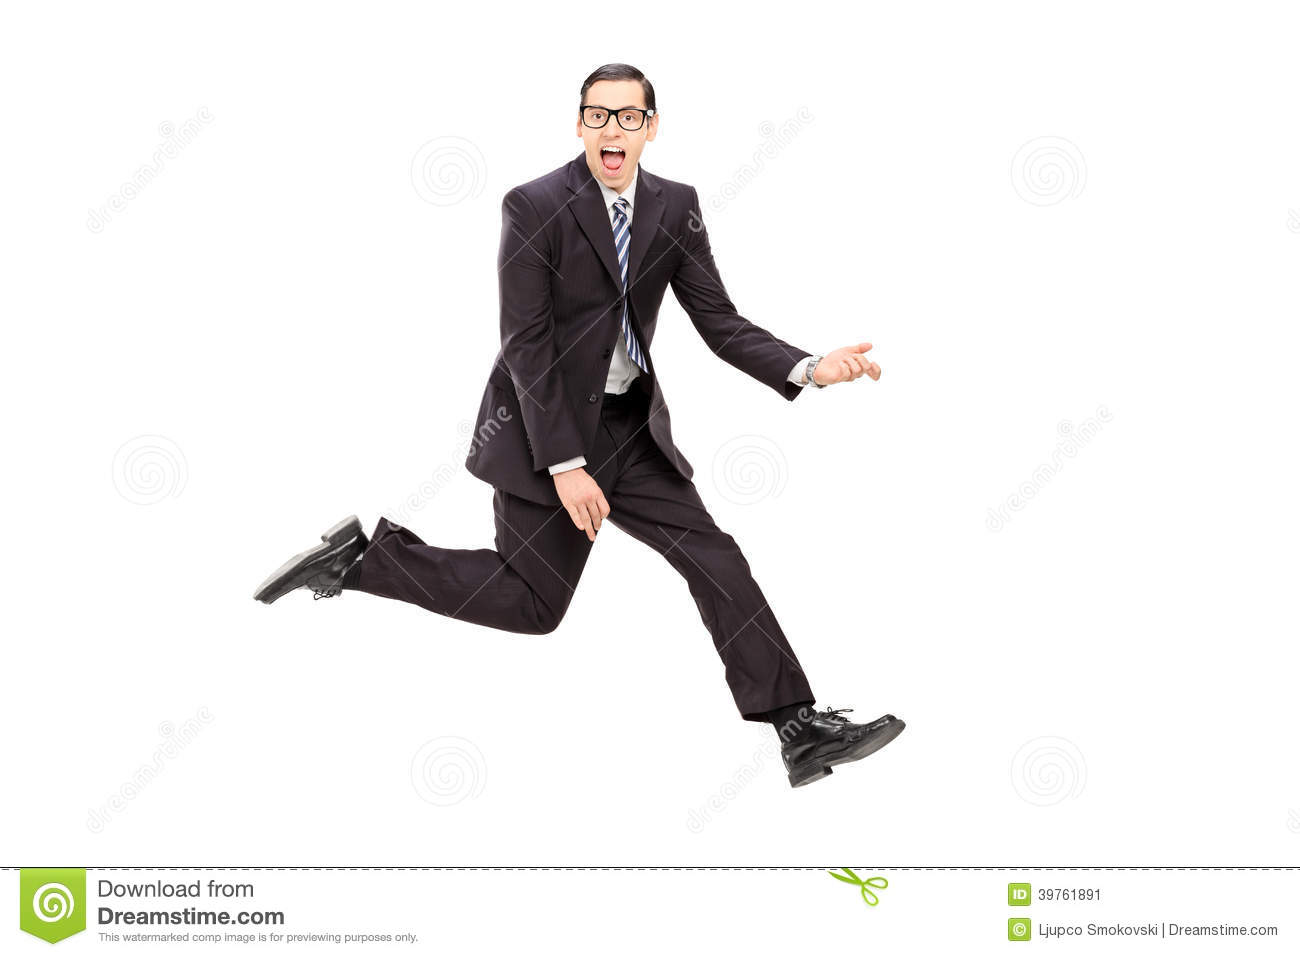 Man In Suit Playing Air Guitar Stock Photo - Image: 39761891